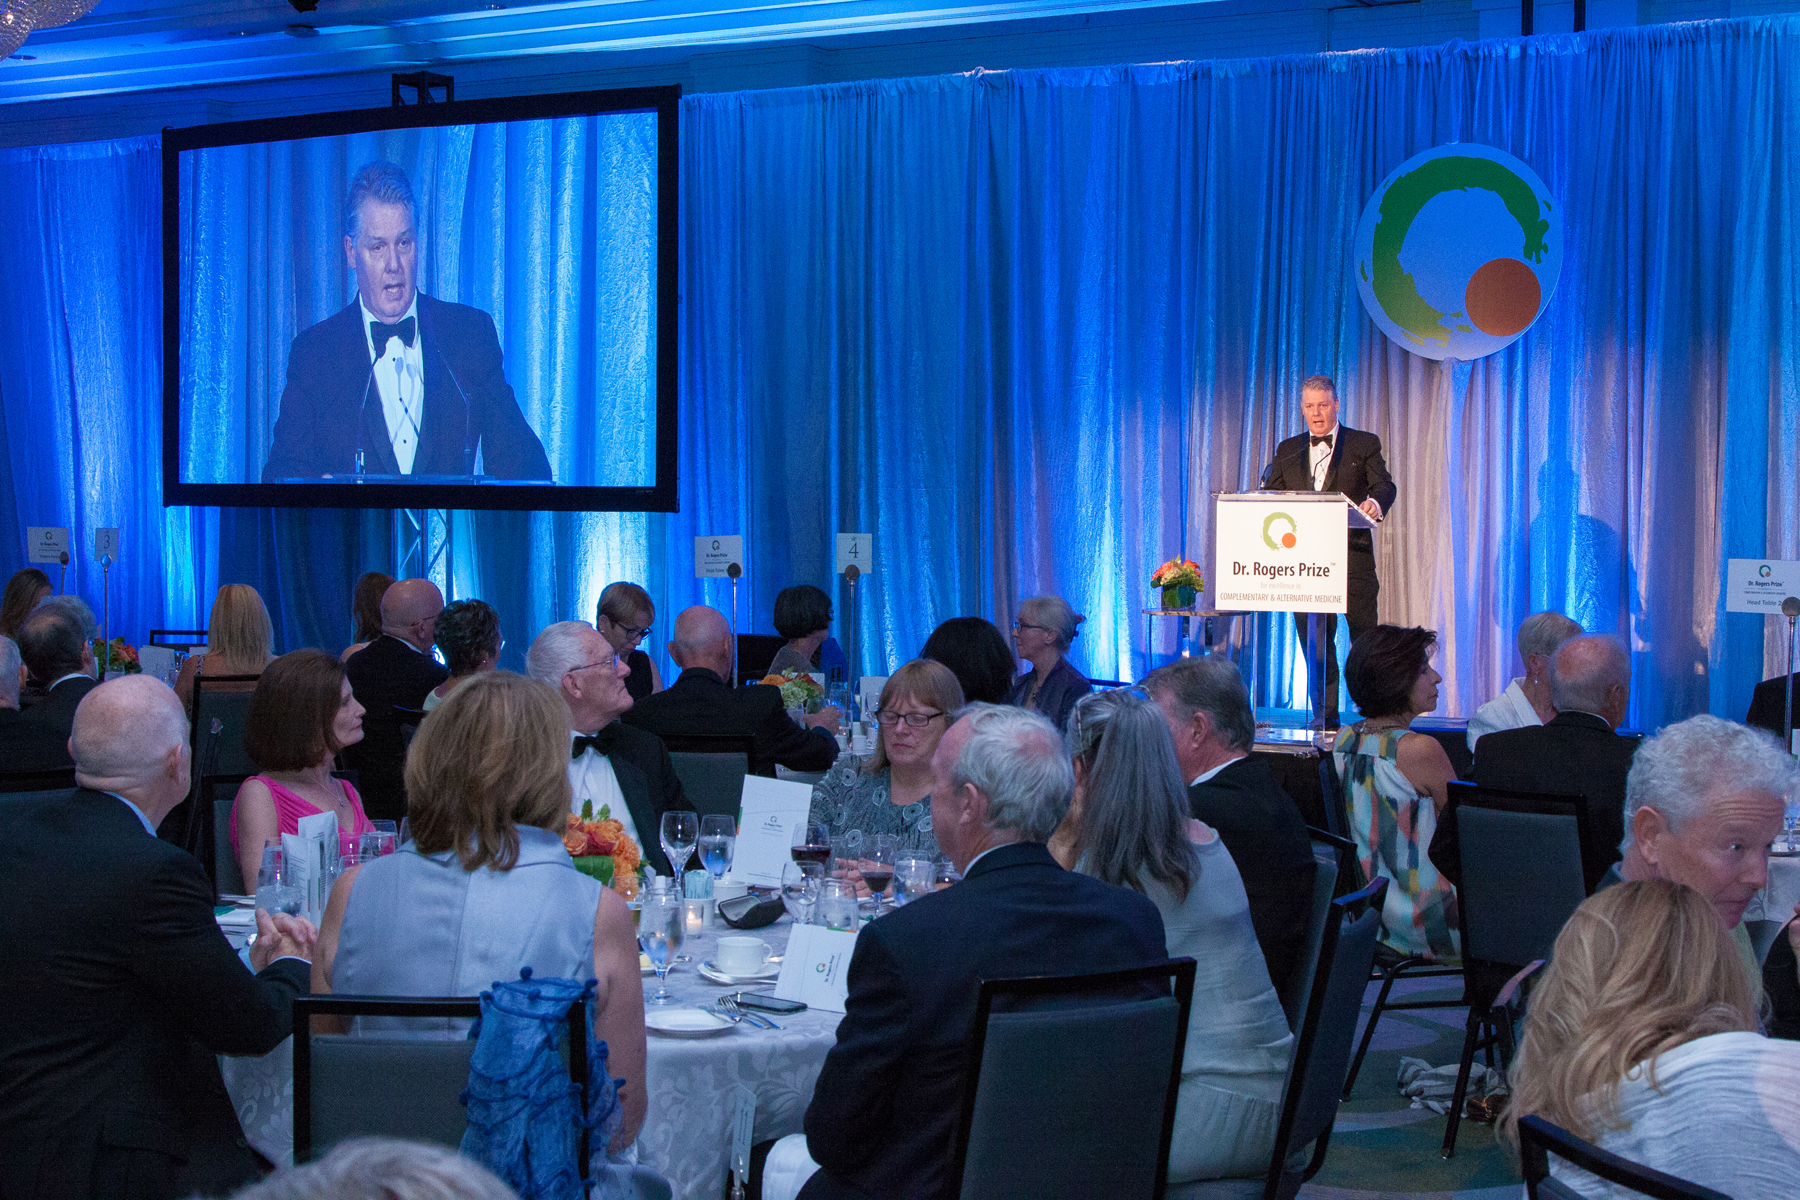 2017 Dr. Rogers Prize Gala Award Dinner